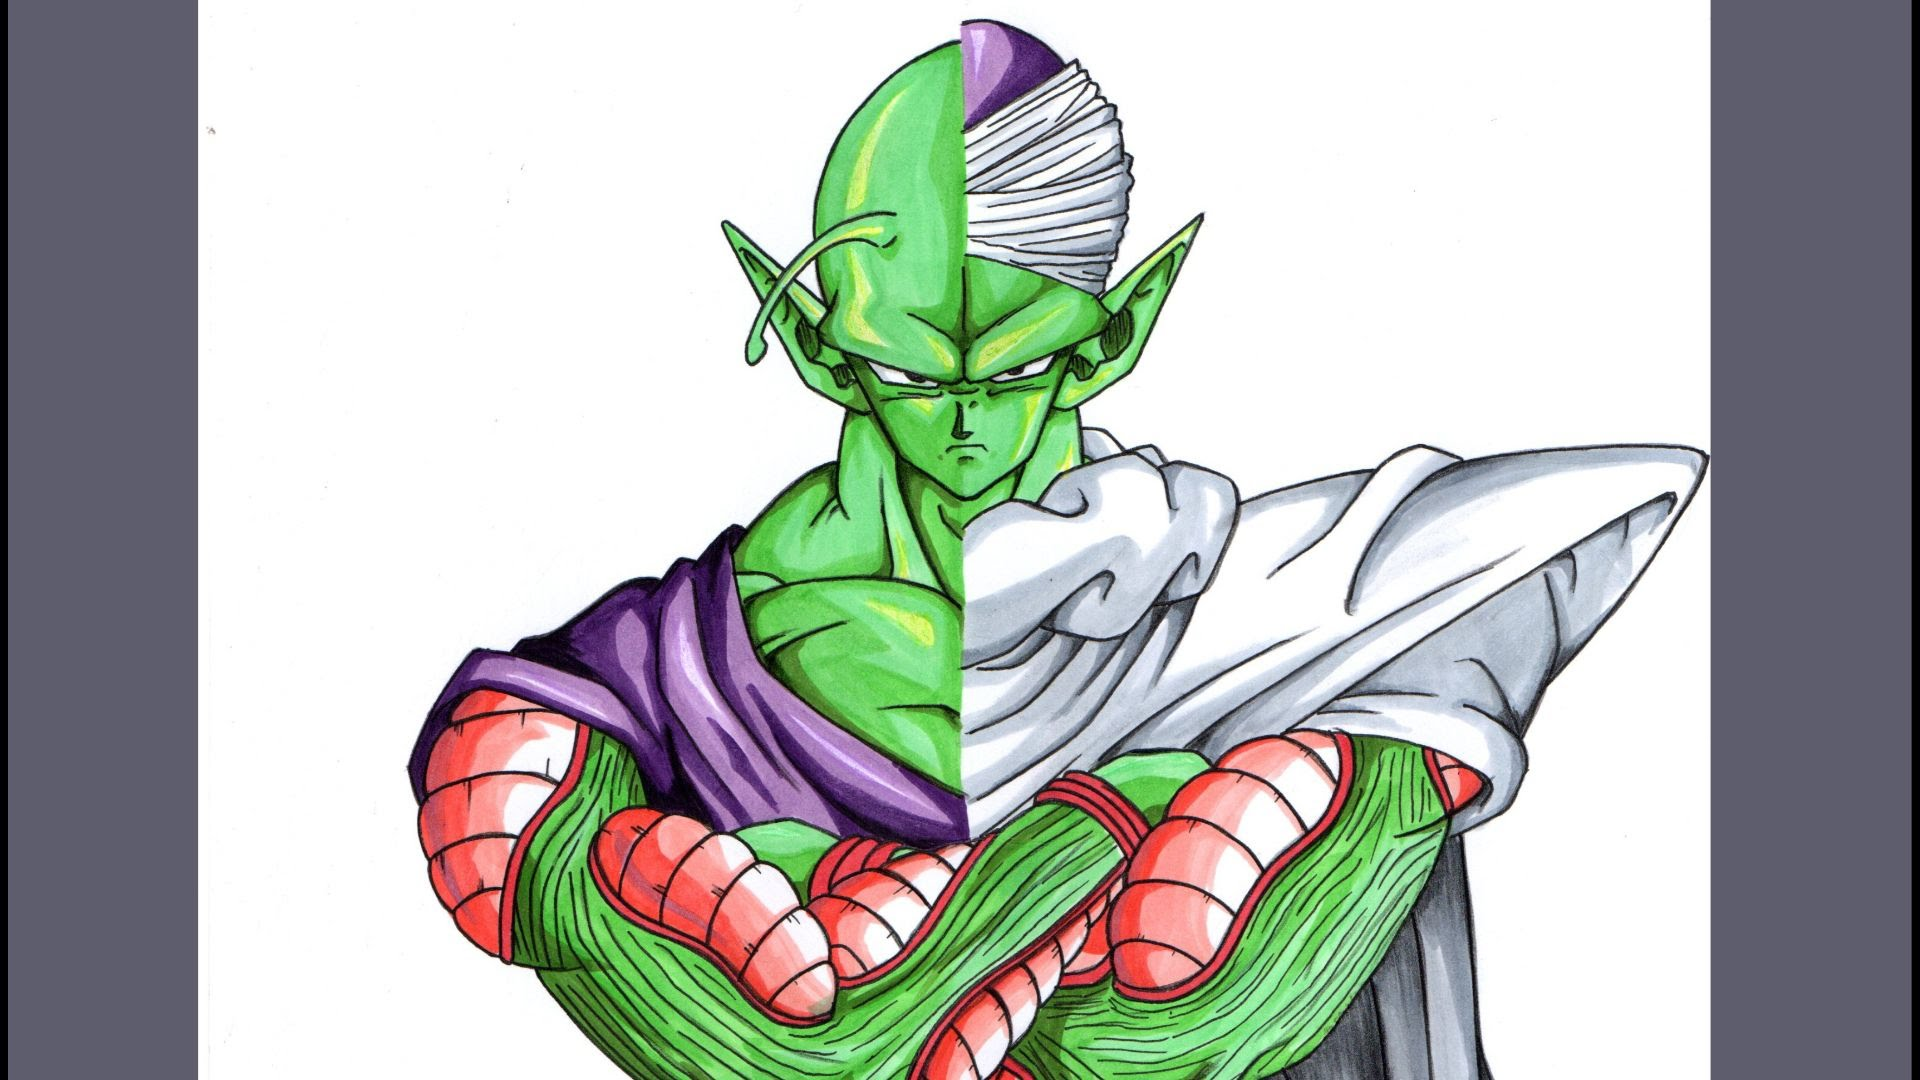 Dragonballz drawing at getdrawings free for personal use 1920x1080 drawing piccolo from dragonball z publicscrutiny Gallery